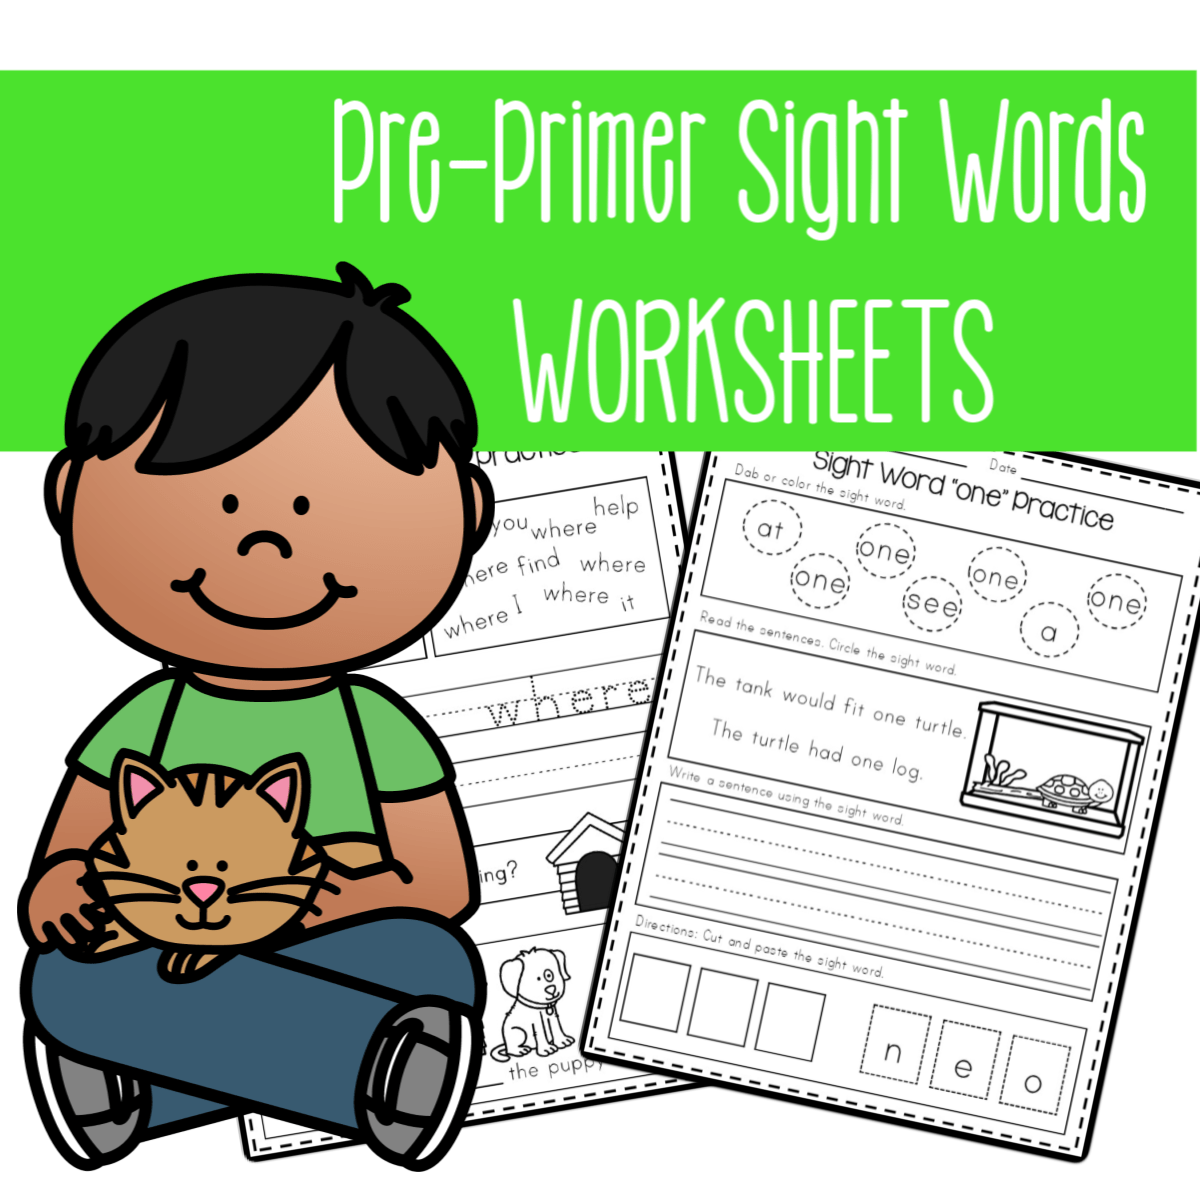 small resolution of Pre-Primer Sight Word Worksheets for Preschool